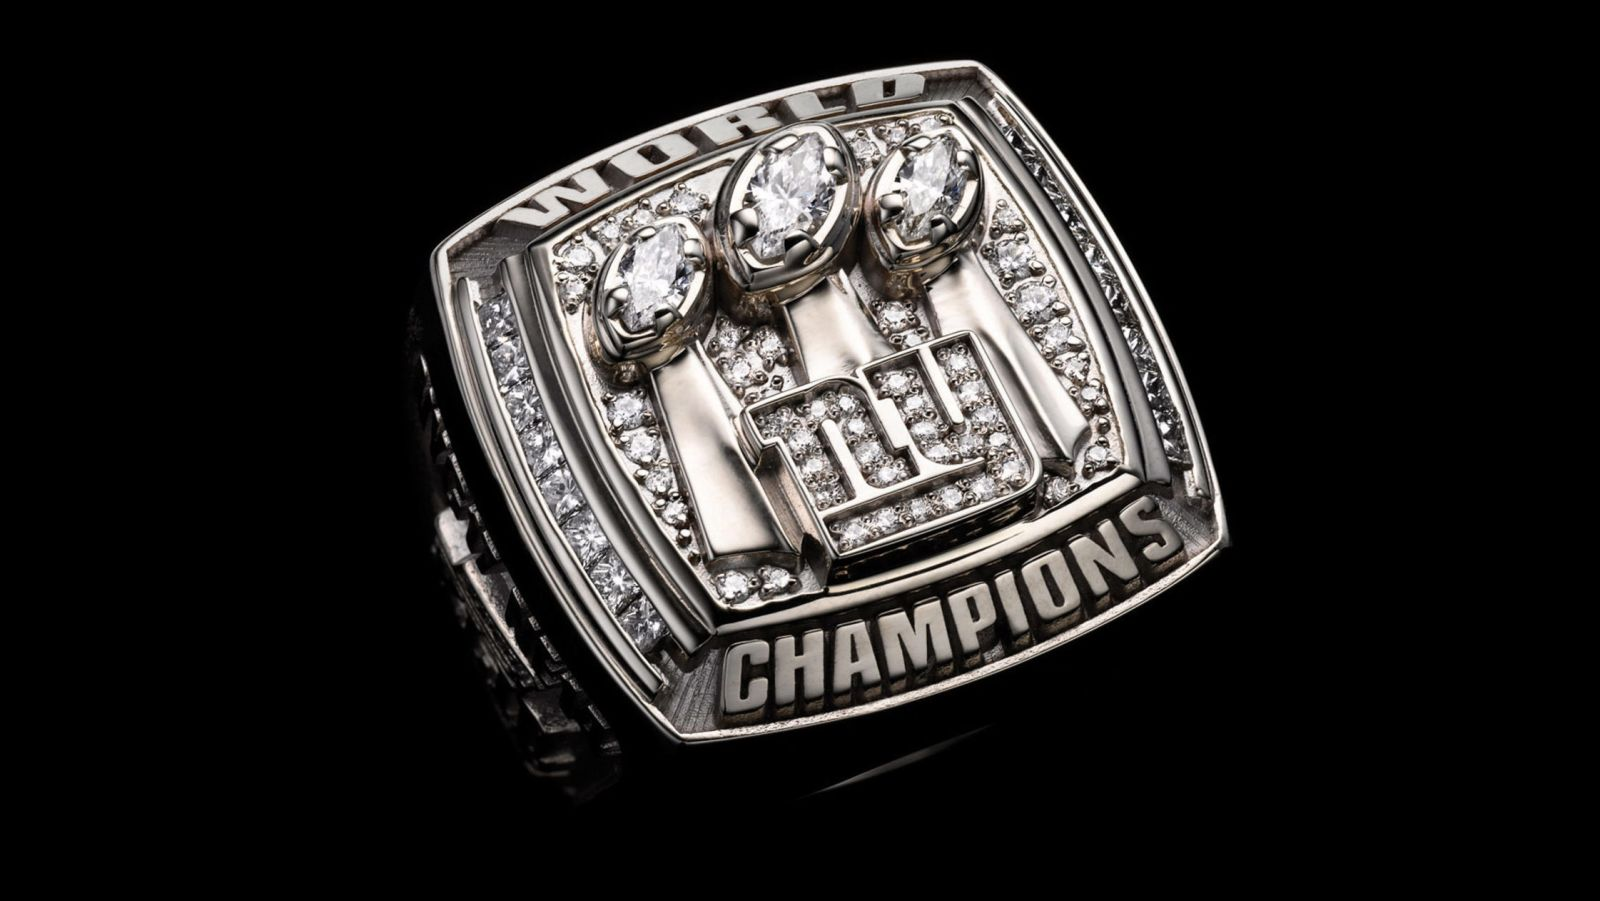 2007 New York Giants Super Bowl Championship Ring